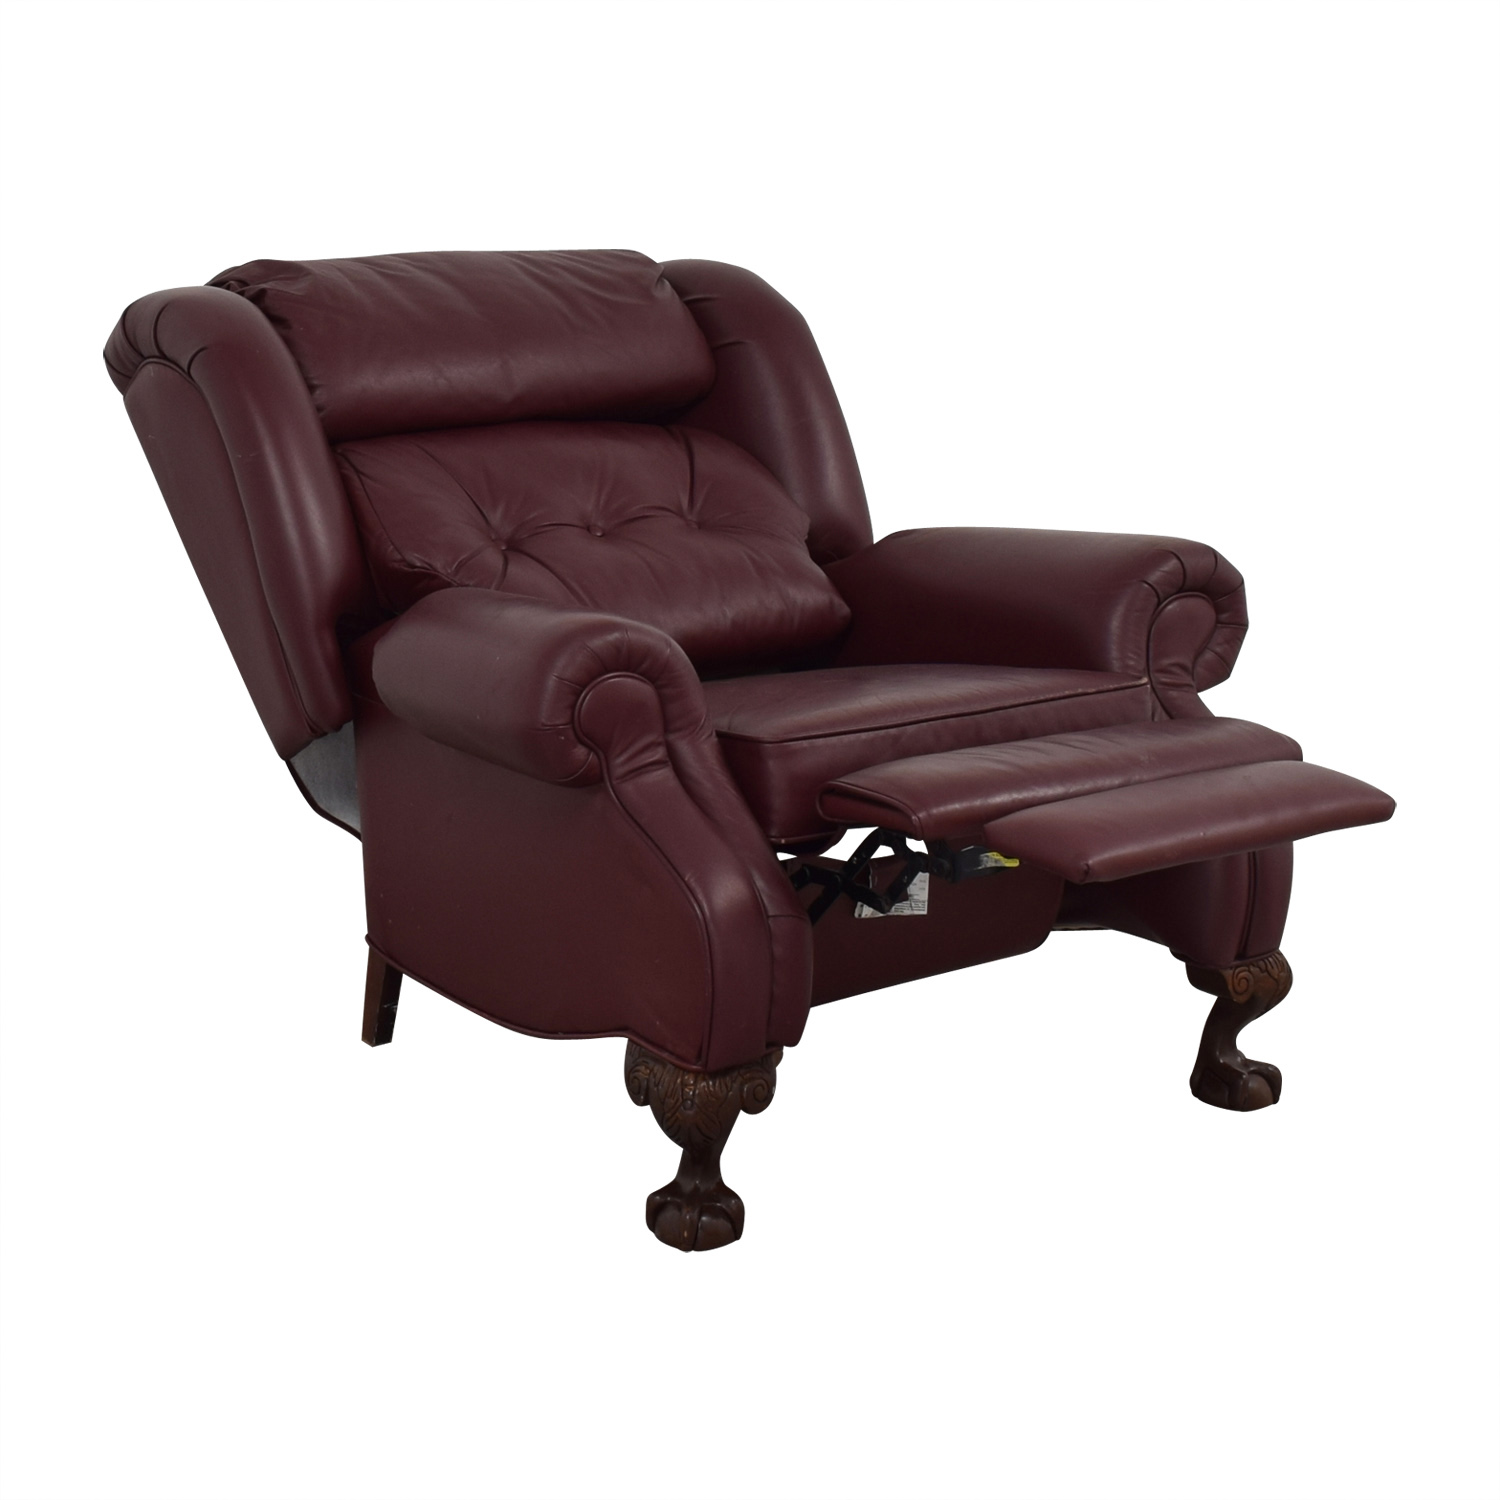 PeopLoungers PeopLoungers Burgundy Recliner for sale